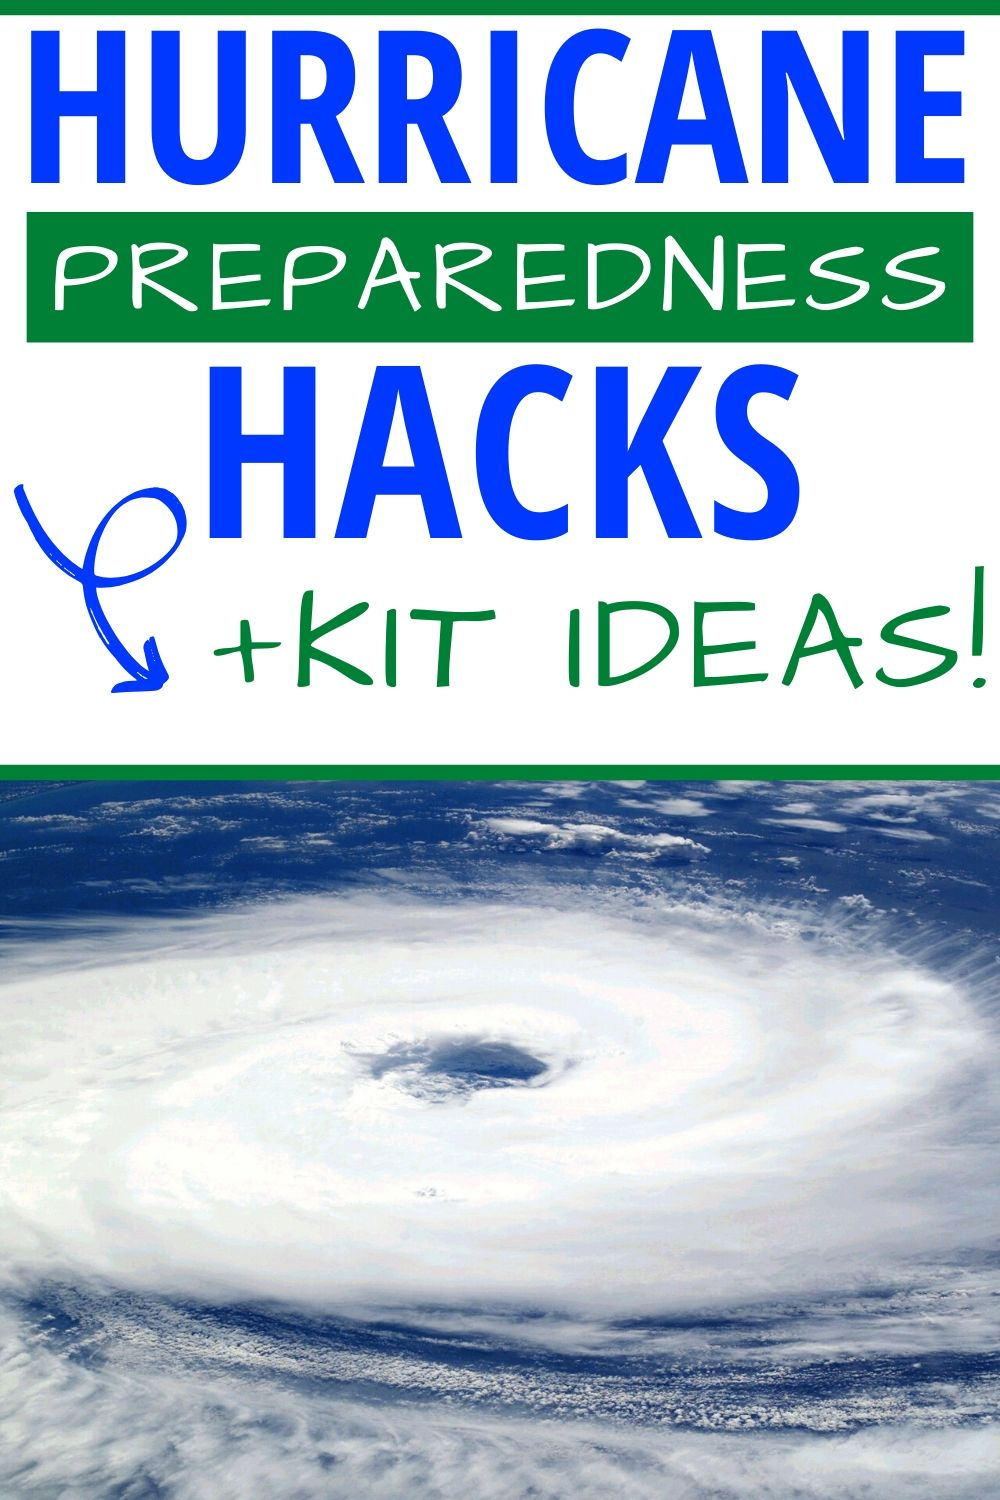 hurricane hacks